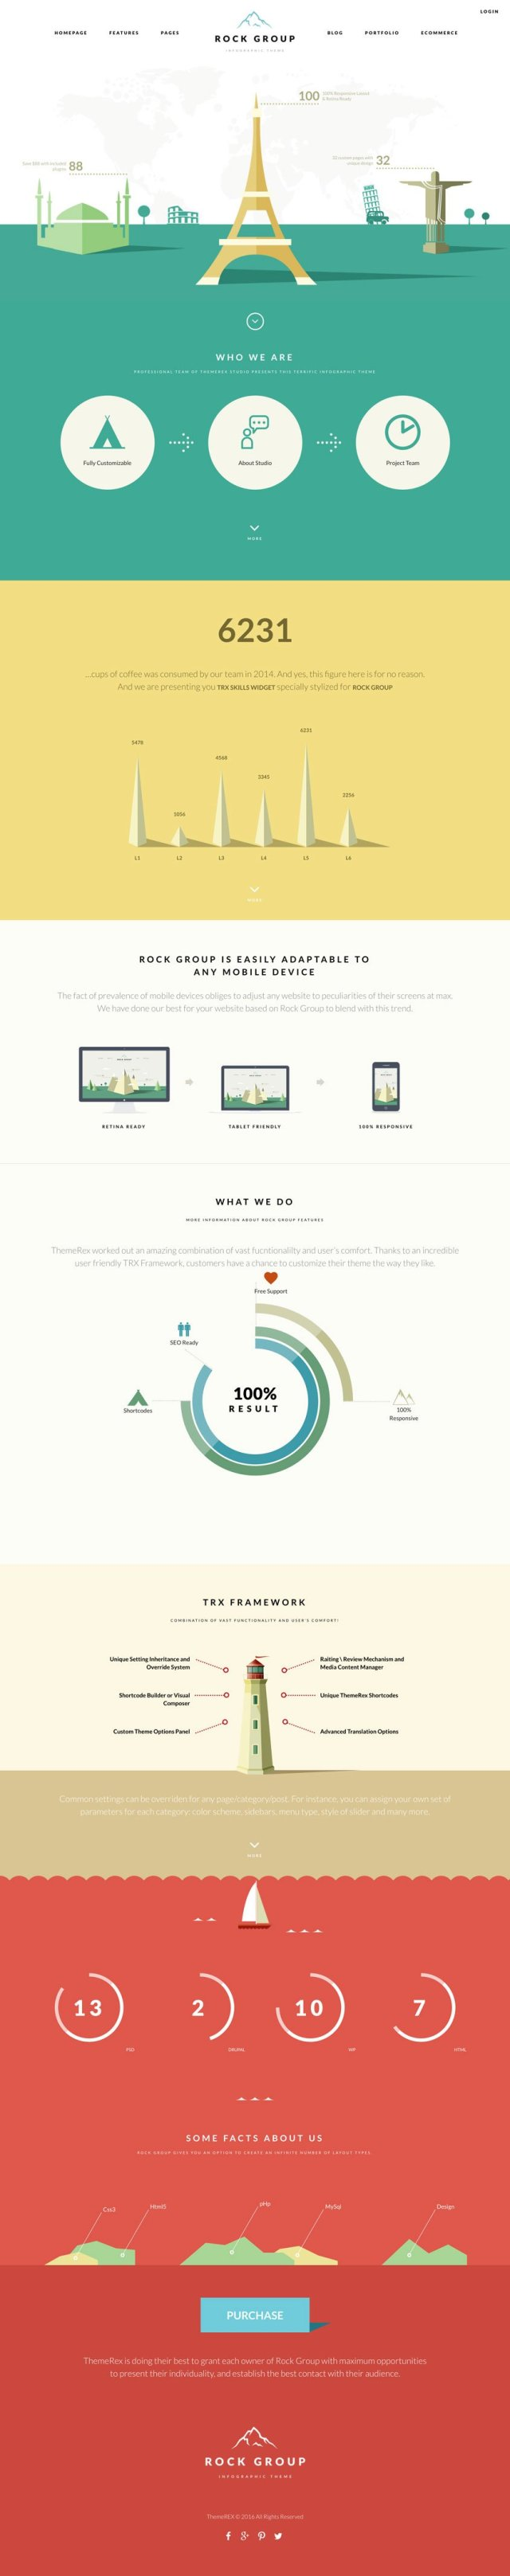 Rock Group Infographic Theme - Clean Website design examples to help inspire you